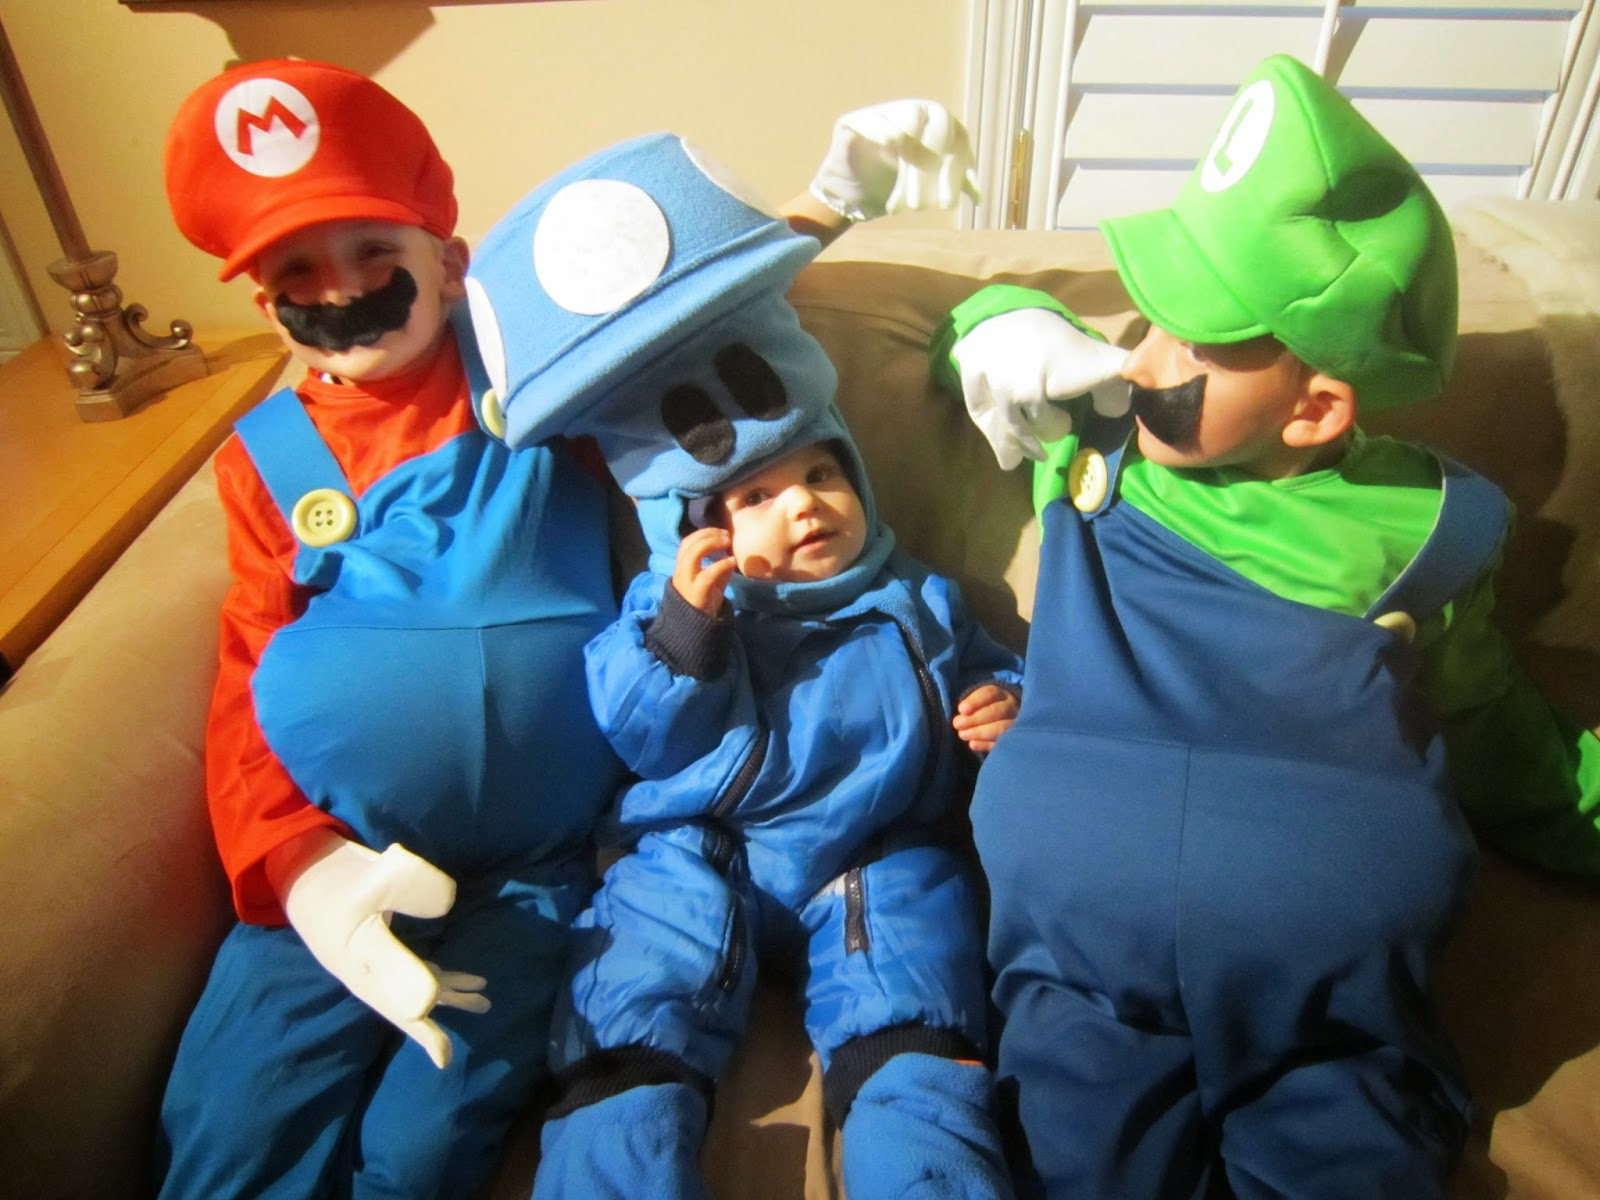 Mario Brothers Halloween costumes, kids costumes, Mario, Luigi, mushroom, homemade costume, Halloween